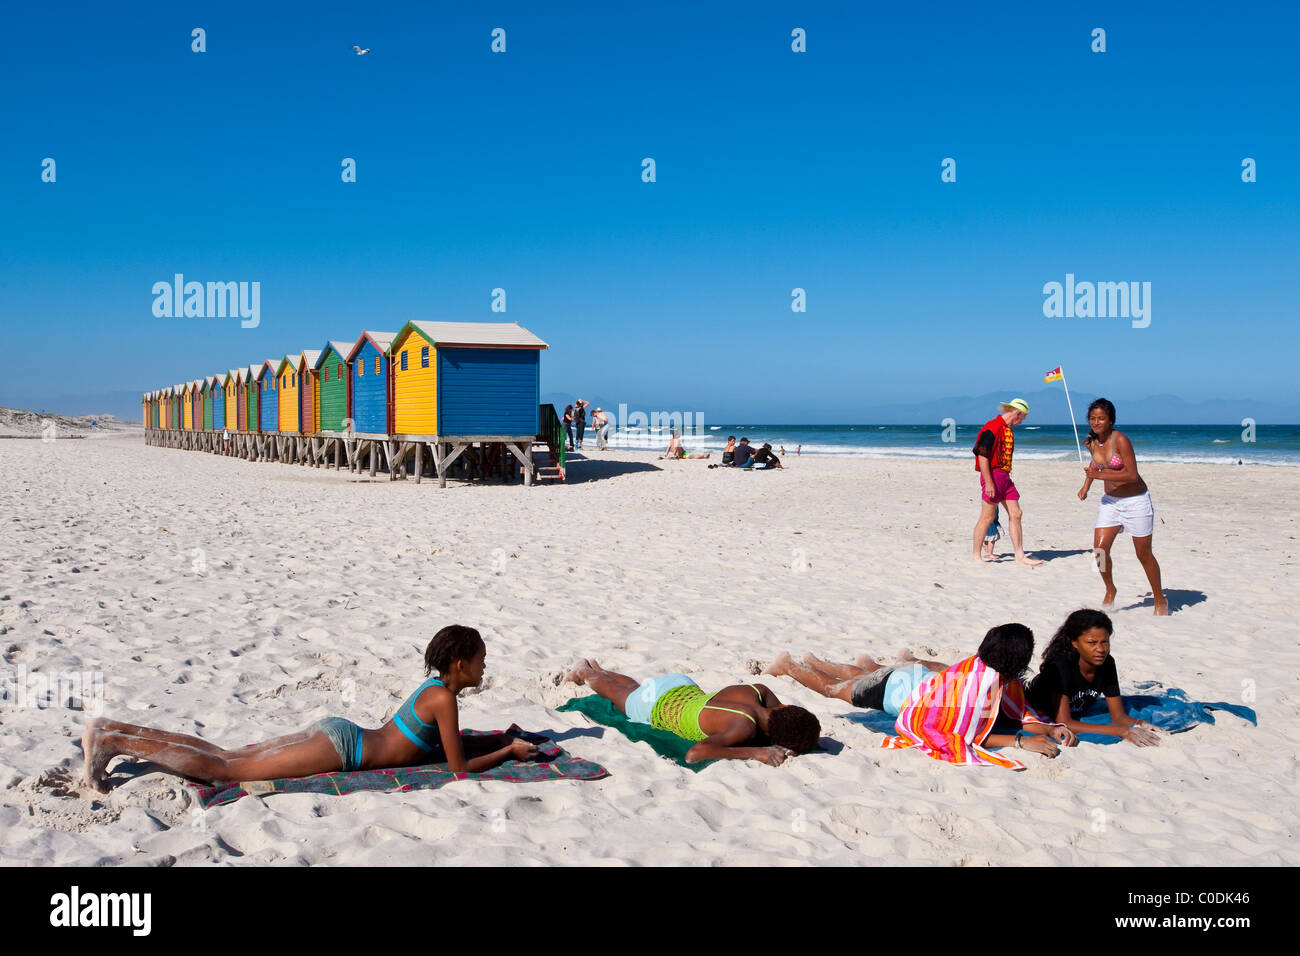 Girls sunbathing in front of beach huts in Muizenberg Cape Peninsula South Africa - Stock Image